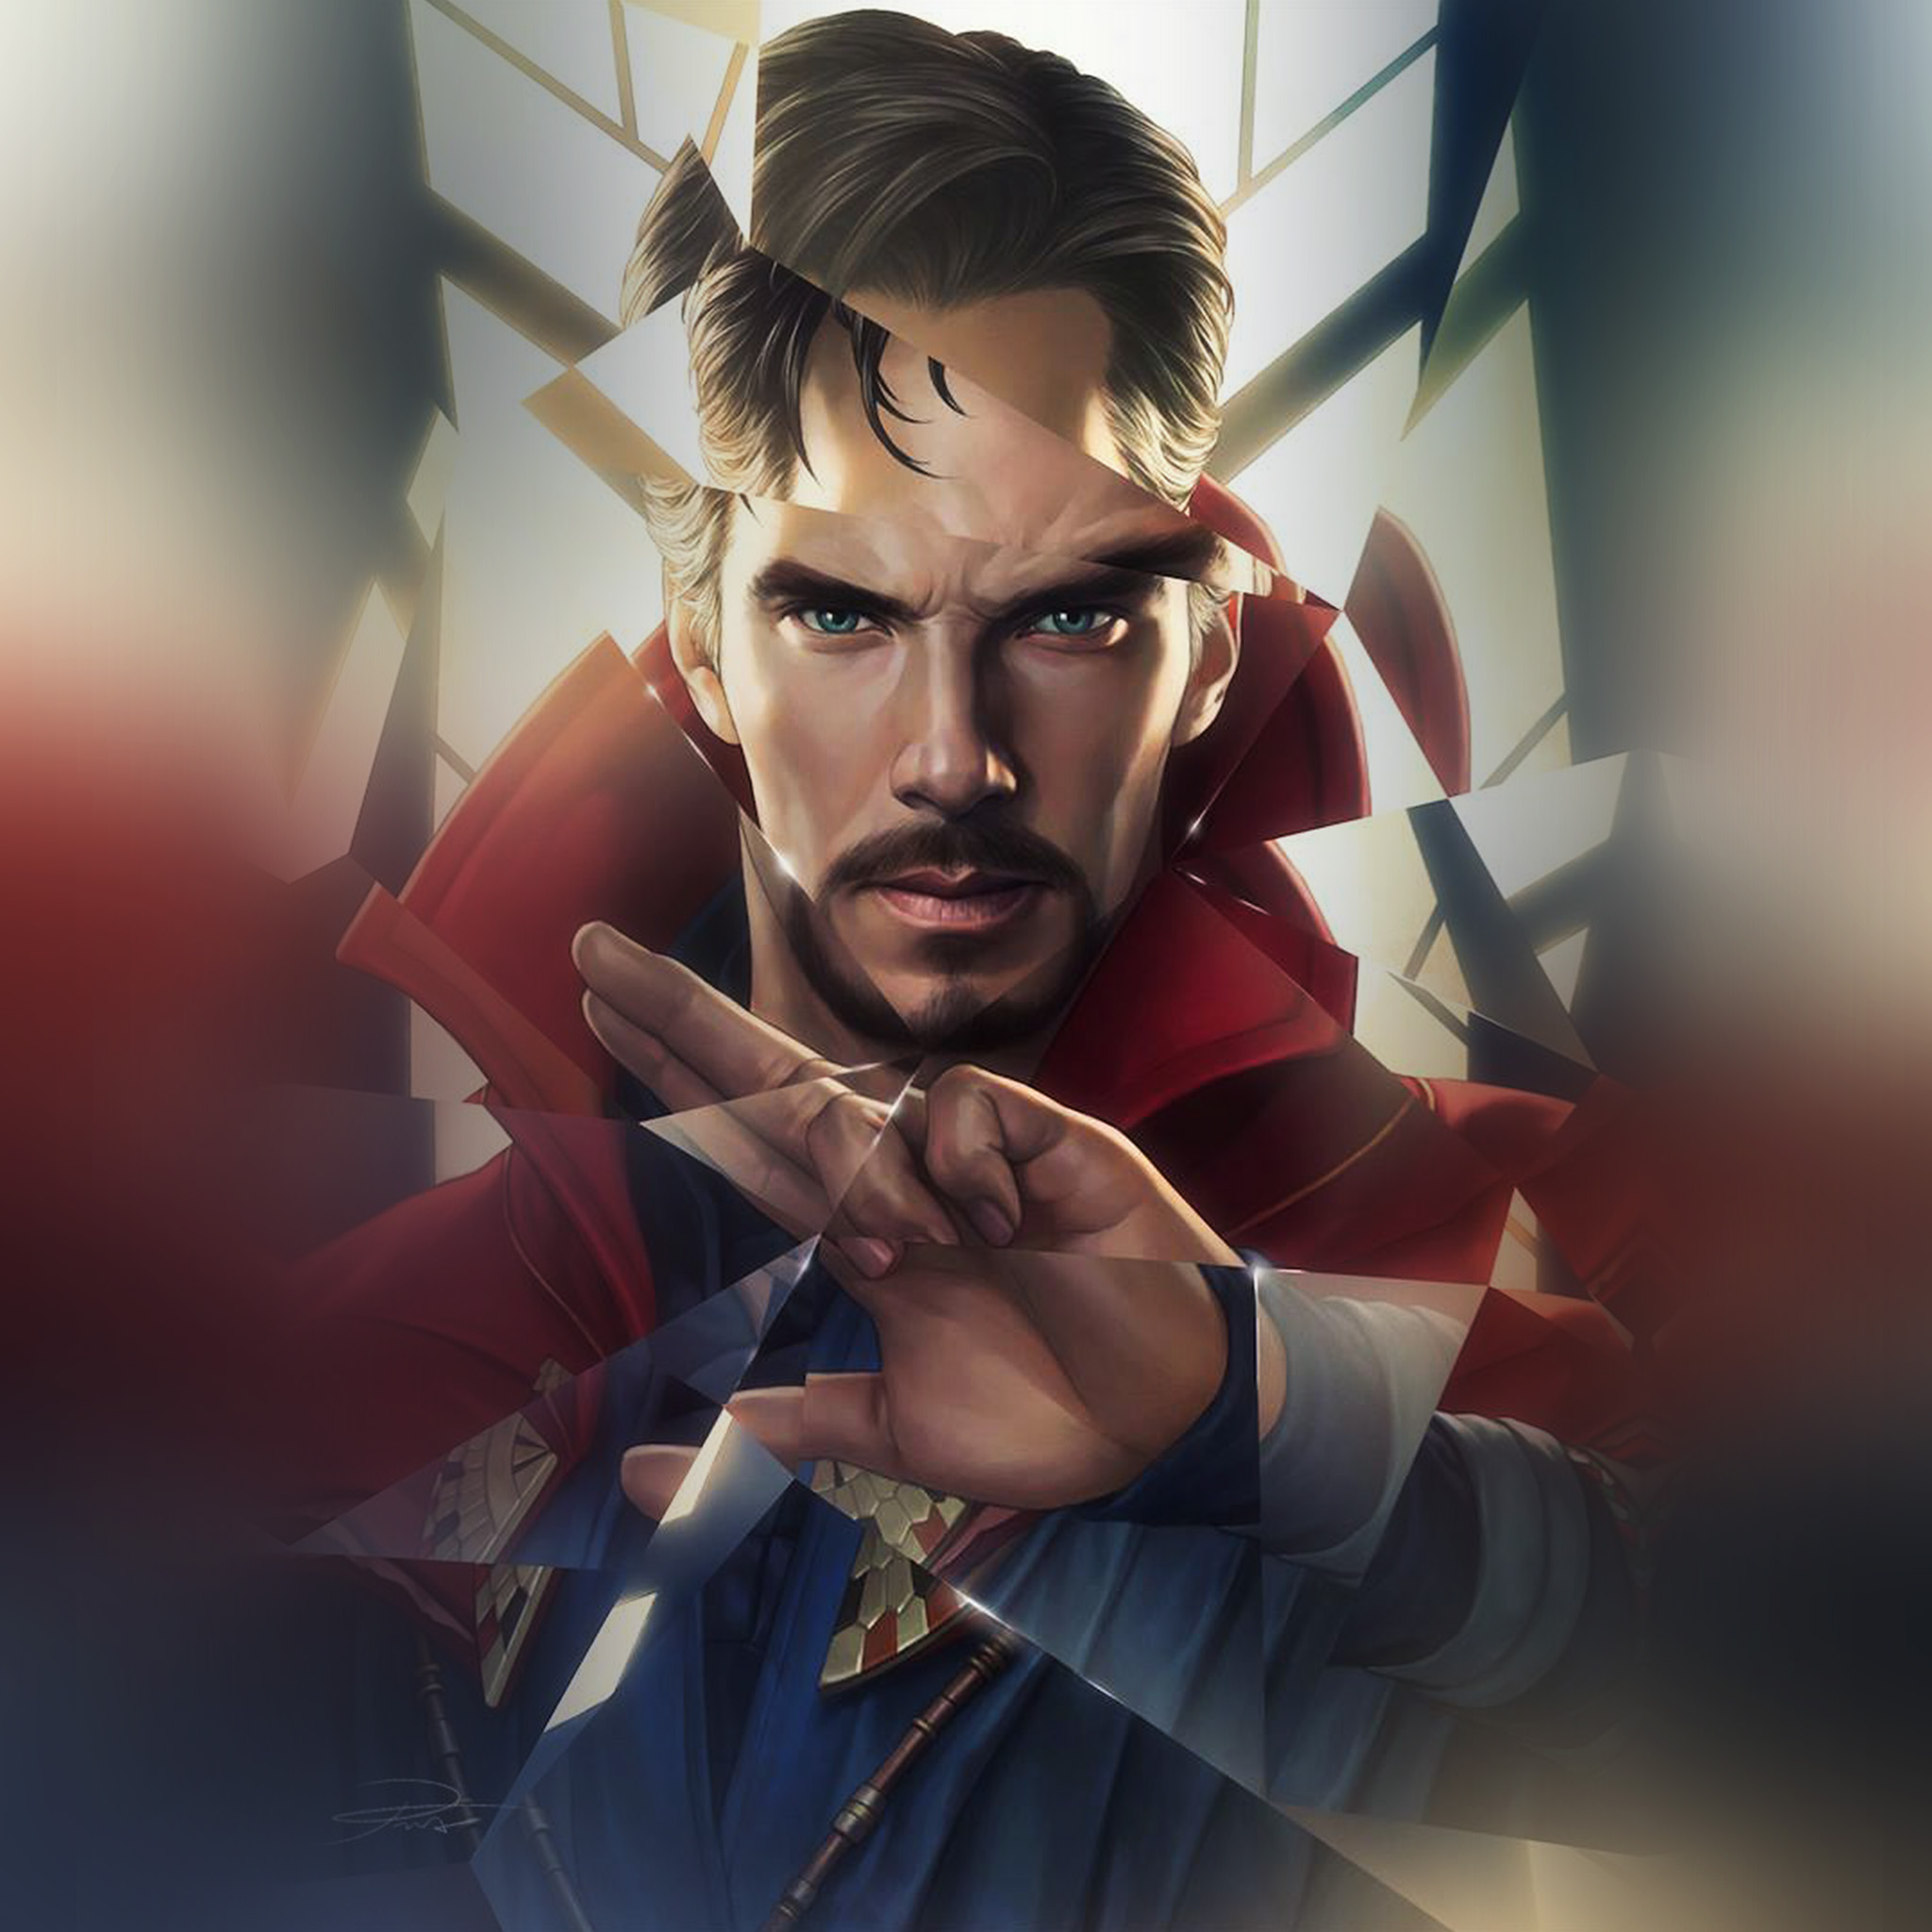 Au77-doctor-strange-hero-illustration-art